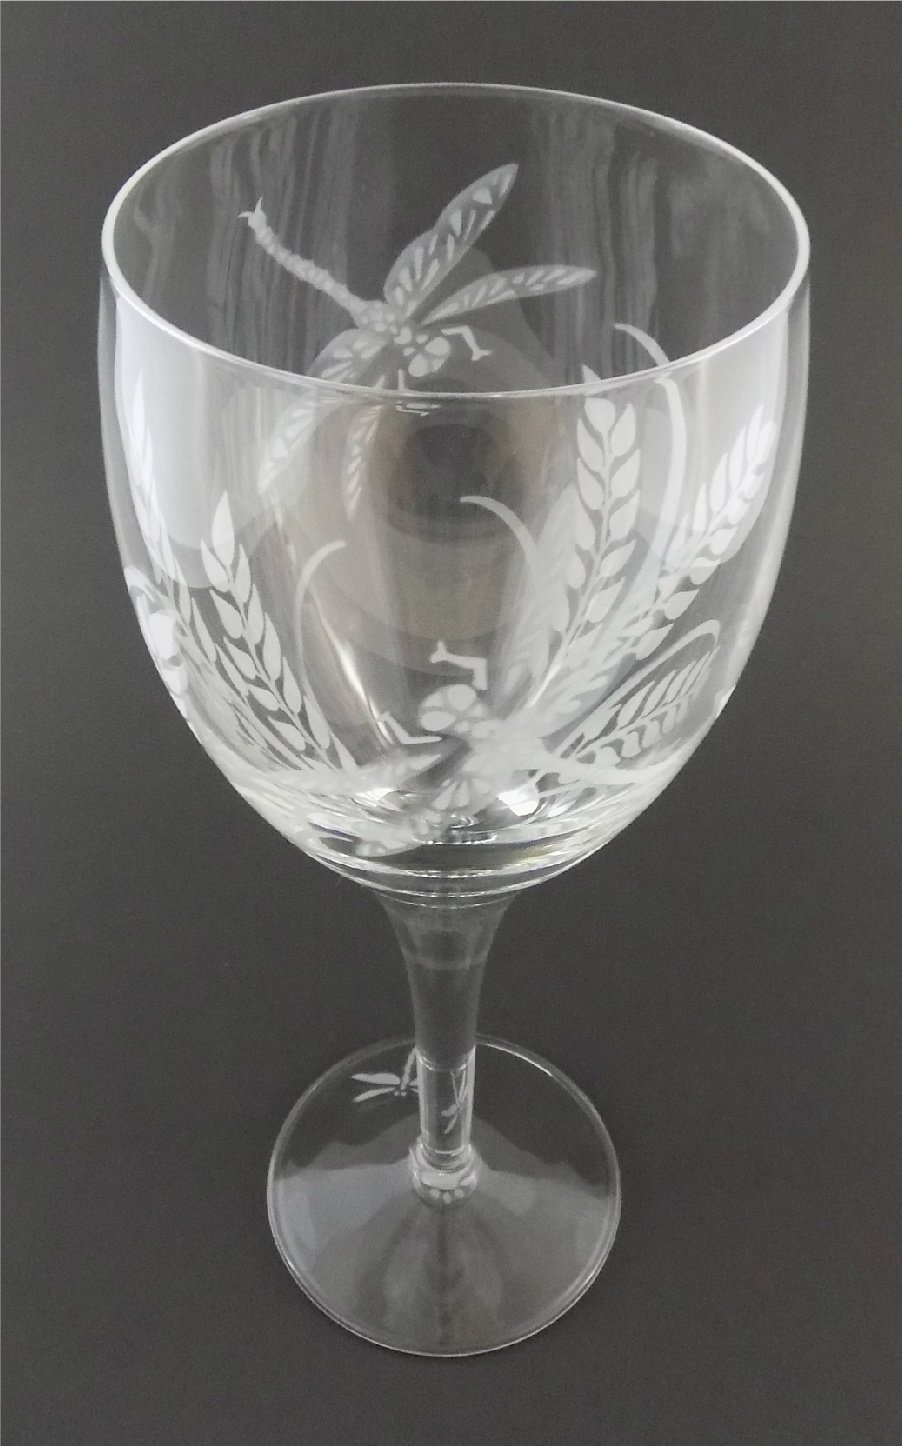 c811b38ab74 IncisoArt Hand Etched Italian Crystal Goblet Sandblasted (Sand Carved)  Handmade Wine Water Glass Engraved (Dragonfly Grass, 340 Milliliter (11.5  ...